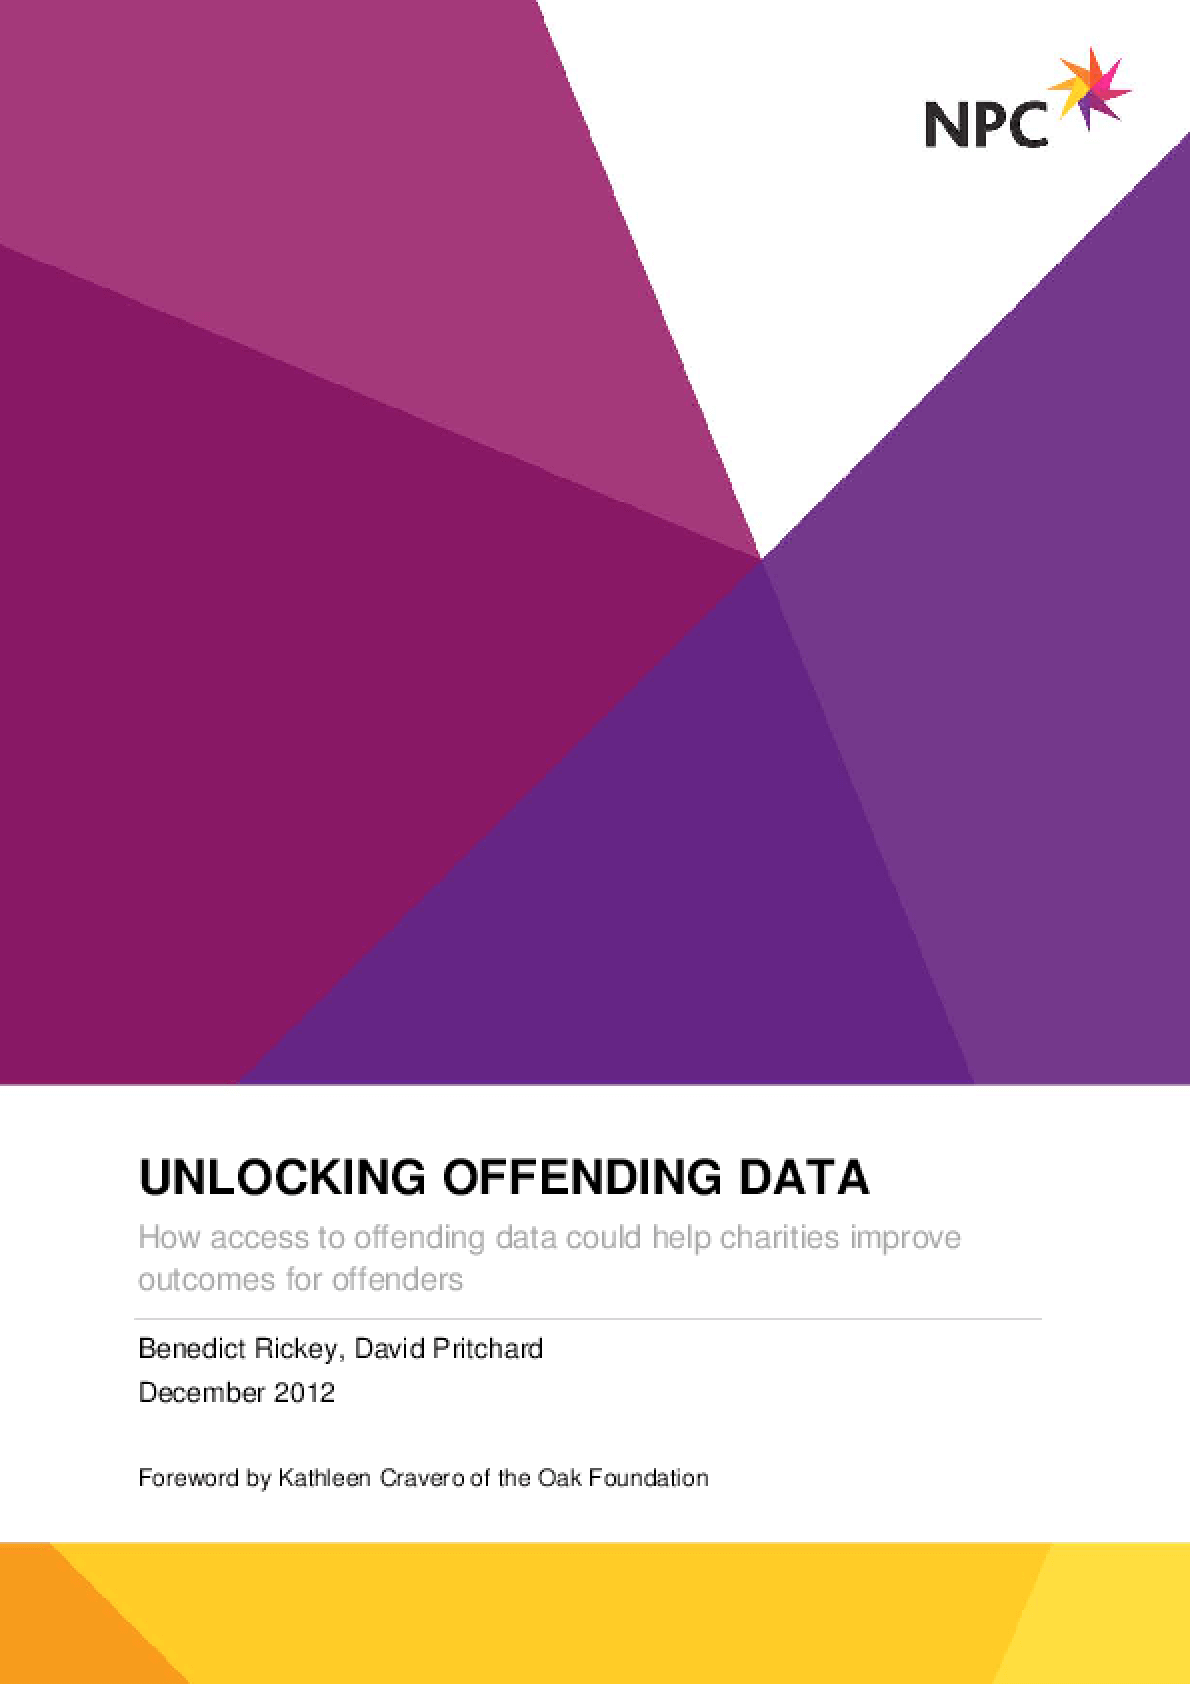 Unlocking Offending Data: How Access to Offending Data Could Help Charities Improve Outcomes for Offenders